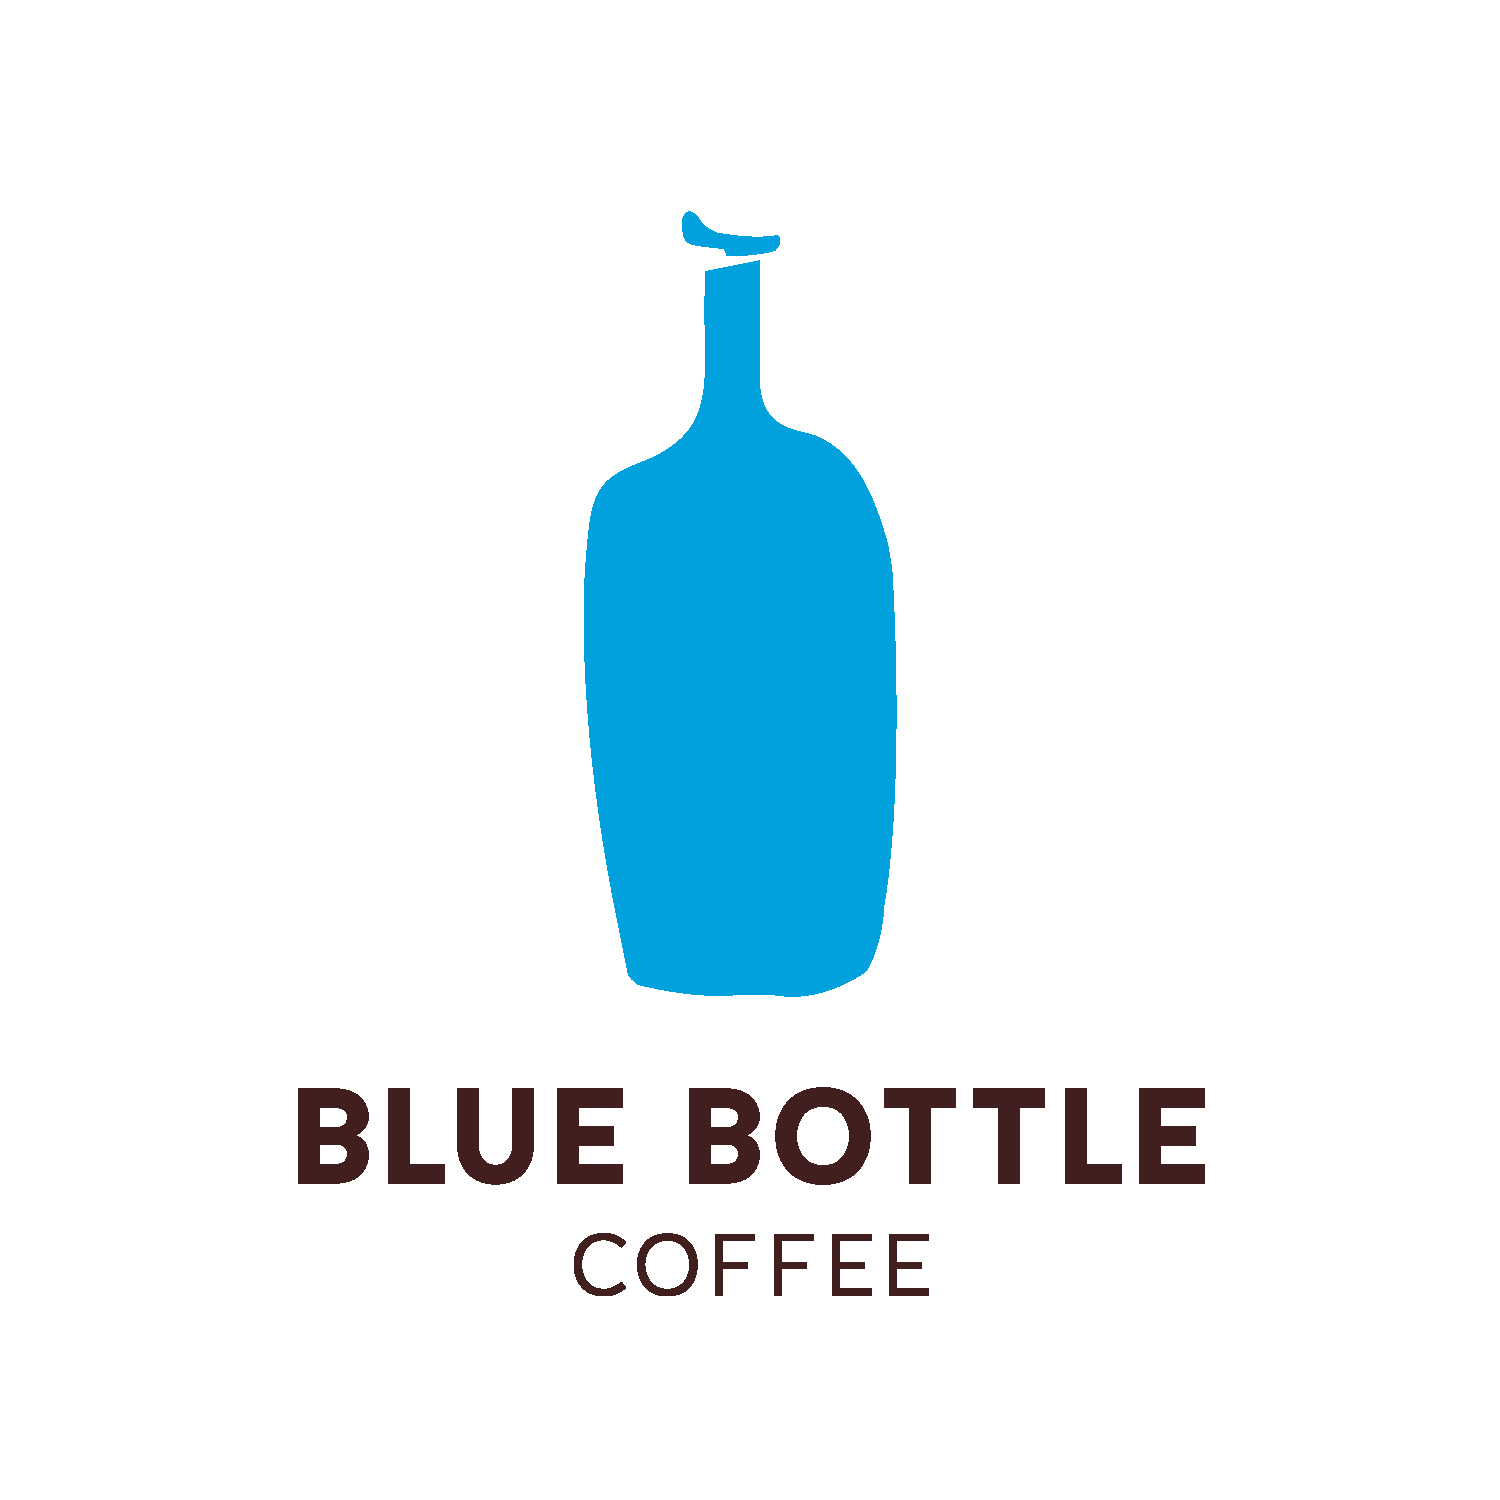 Blue Bottle Coffee logo